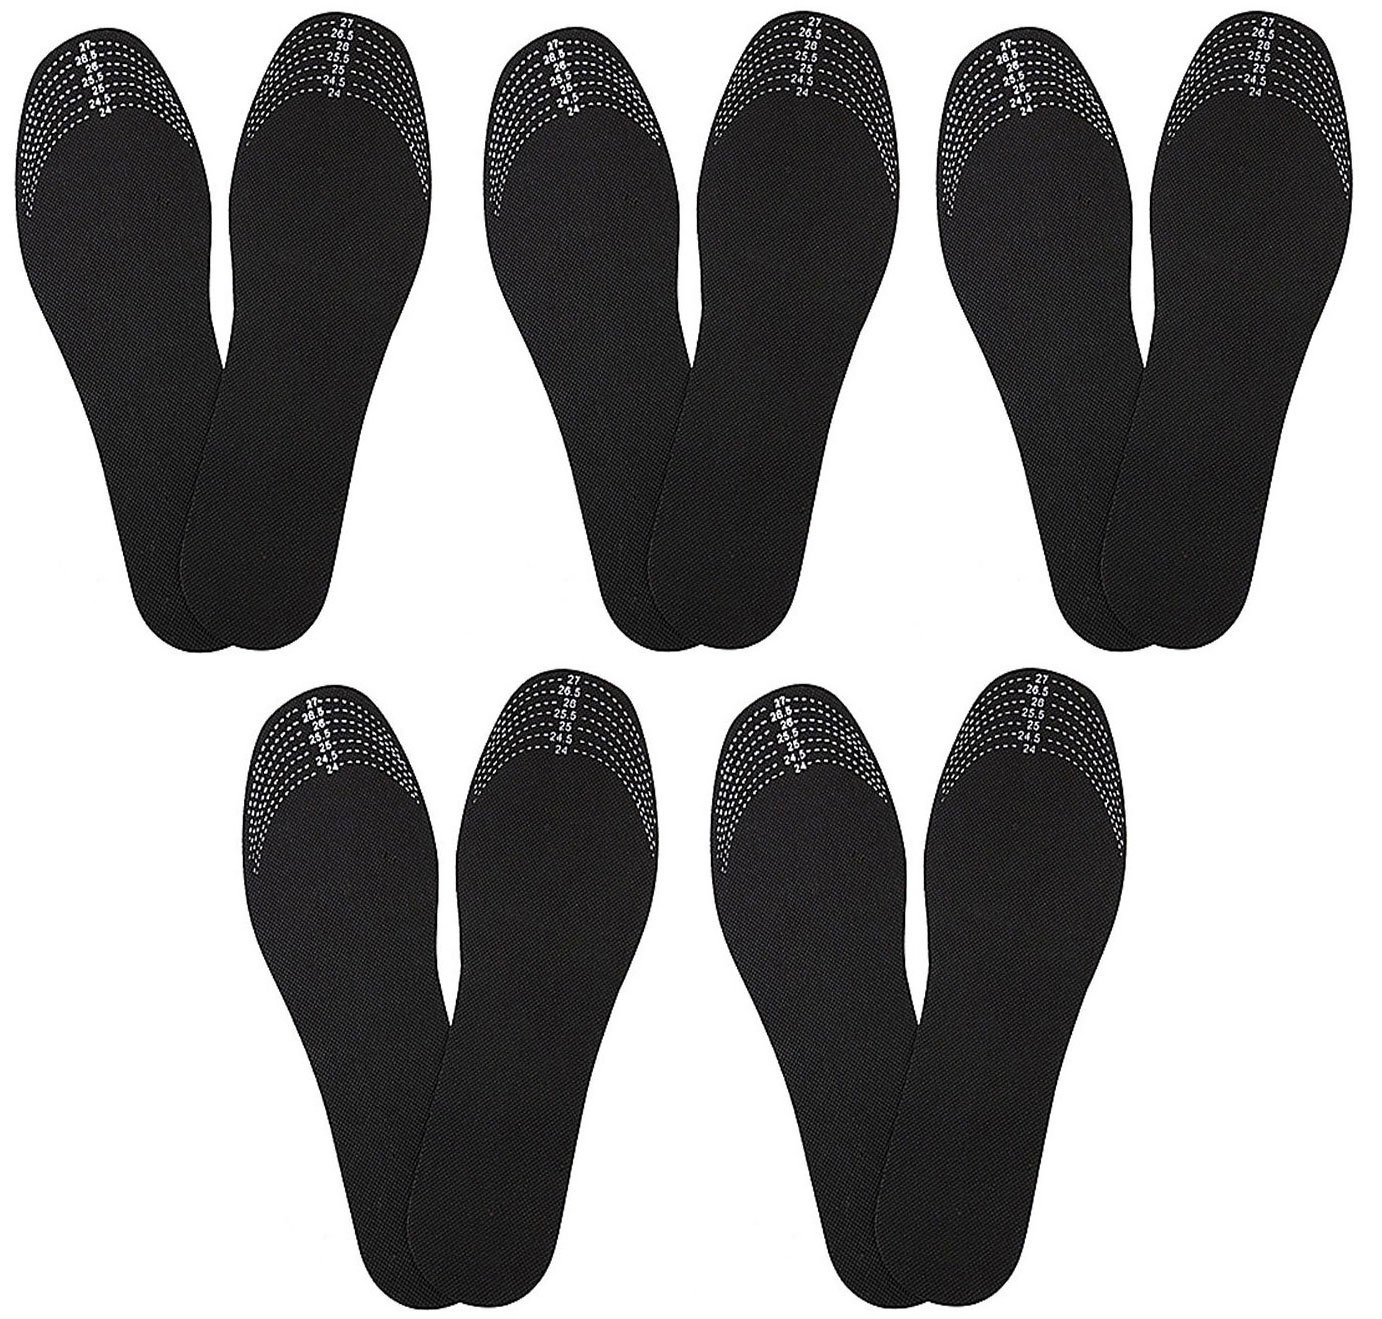 Pack of 5 Pairs Which Is 10 Insoles to Kill Off the Cause of Odor From Smelly Feet and Shoes Naturally with Activated Charcoal Wetness Drying and Odor Absorbing Shoe Insoles for Women's 7-12 and Mens 5.5-10.5 USA and Canada Shoe Sizes original bare bulb for epson brightlink 450wi 455wi powerlite 450w 460 eb 440w eb 450w eb 450wi eb 455wi eb 460 h318a h343a